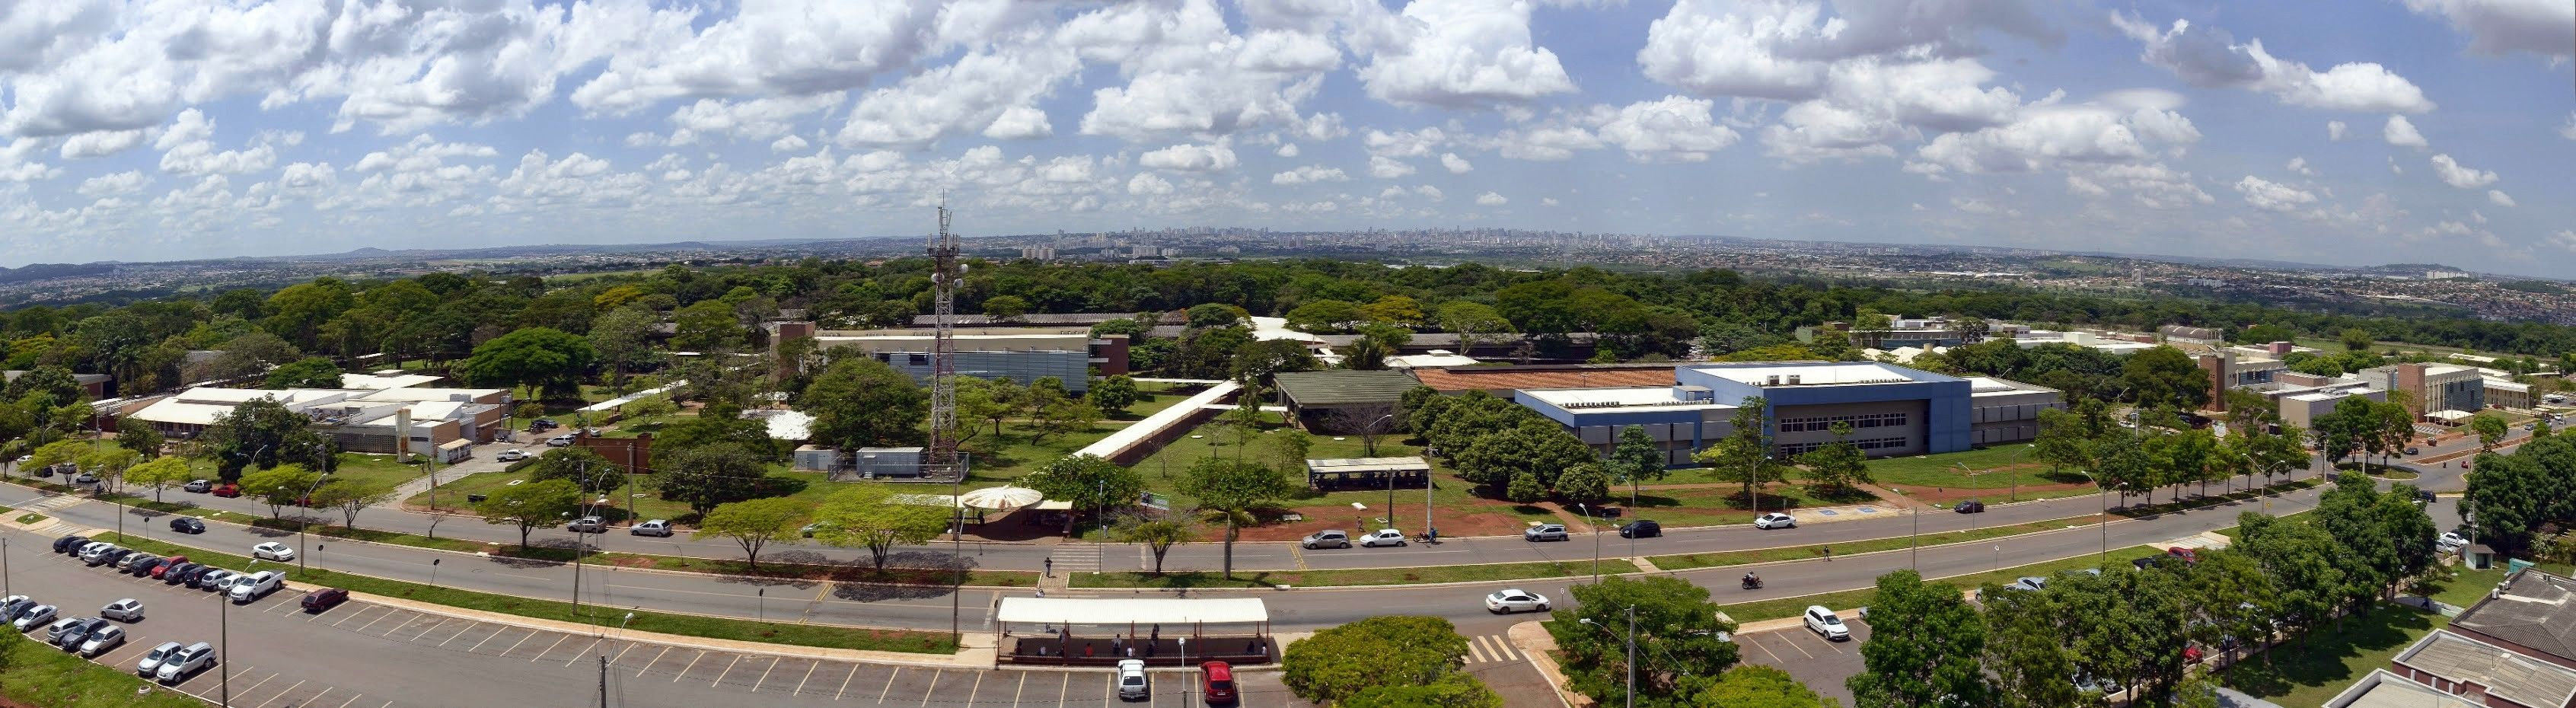 Foto aérea do campus 2.